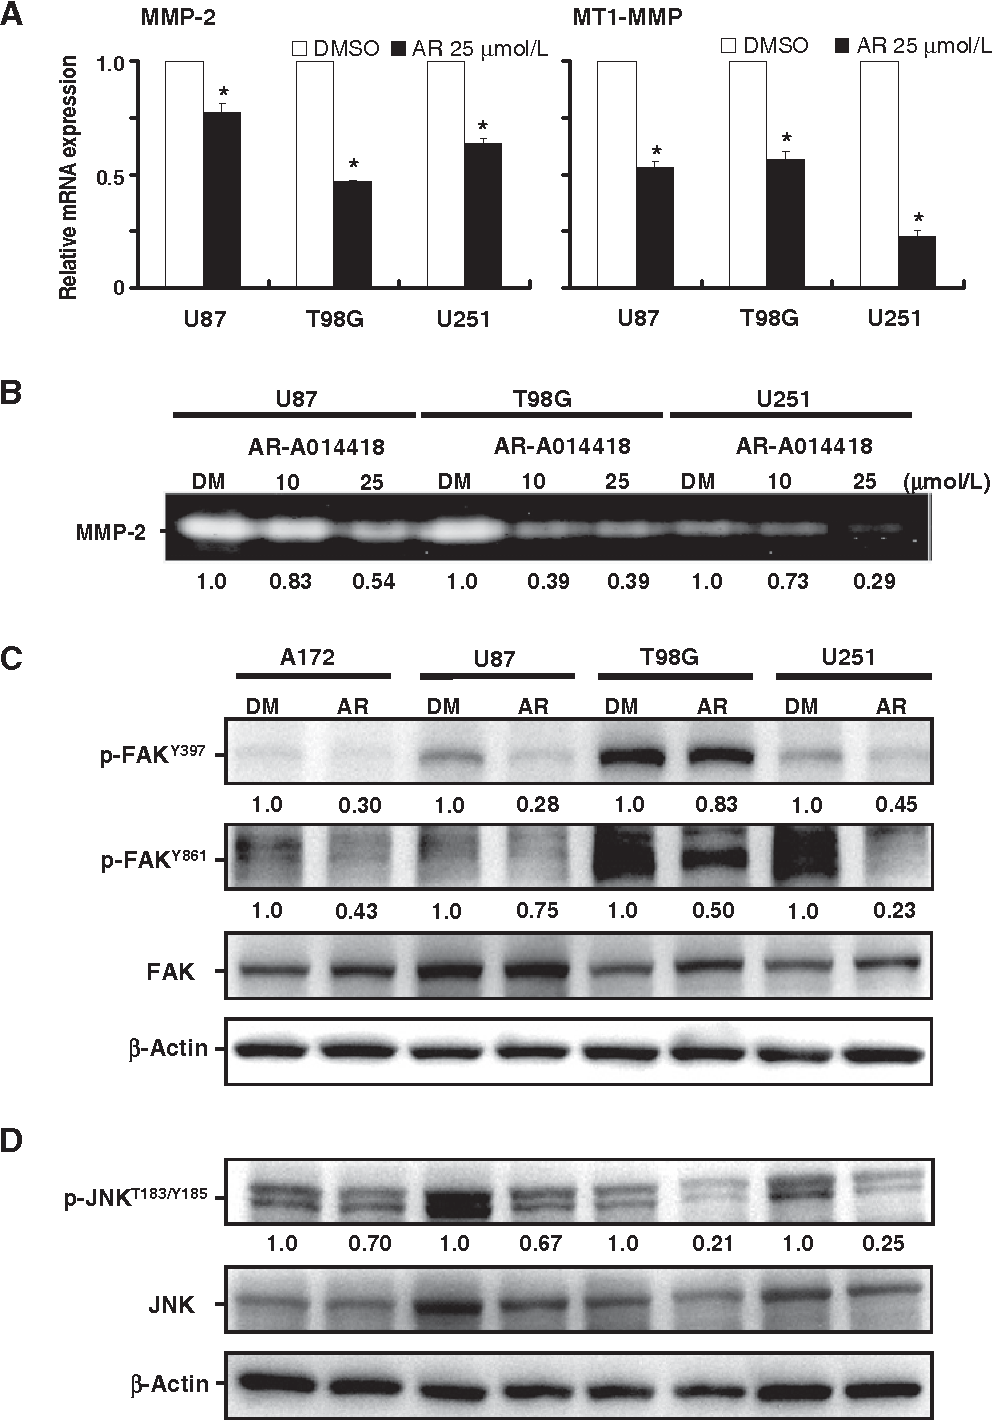 Figure 4. Effect of GSK3b inhibition on the expression of MMP-2 and MT1-MMP (A), the secretion of MMP-2 (B), and the expression and phosphorylation of FAK (C) and JNK (D) in glioblastoma cells. A, the expression of mRNA for MMP-2 and MT1-MMP was measured by qRT-PCR in glioblastoma cells after 24 hours of treatment with DMSO or ARA014418 (AR). Relative levels of mRNA expression shown are the means SDs from four separate experiments. , P < 0.05, statistically significant difference between cells treated with DMSO and AR-A014418. B, glioblastoma cells were grown in regular medium for 24 hours and then in serum-free medium for 2 hours. Both media contained either DMSO (DM) or AR-A014418. The conditioned media were collected from the respective cell cultures and analyzed for MMP-2 by gelatin zymography. The value shownbelow each lane is the relative amount of MMP-2 quantified by densitometry and normalized to the same cells treated with DMSO. C and D, Western blotting analyses comparing the levels of phosphorylation for FAK (p-FAKY397, p-FAKY861) and JNK (p-JNKT183/Y185) between glioblastoma cells treated with DMSO (DM) or with 25 mmol/L AR-A014418 (AR) for 24 hours. The value below each lane shows the relative level of p-FAKY397, p-FAKY861, or p-JNKT183/Y185 quantified by densitometry and normalized to total FAK or JNK in the same cells.